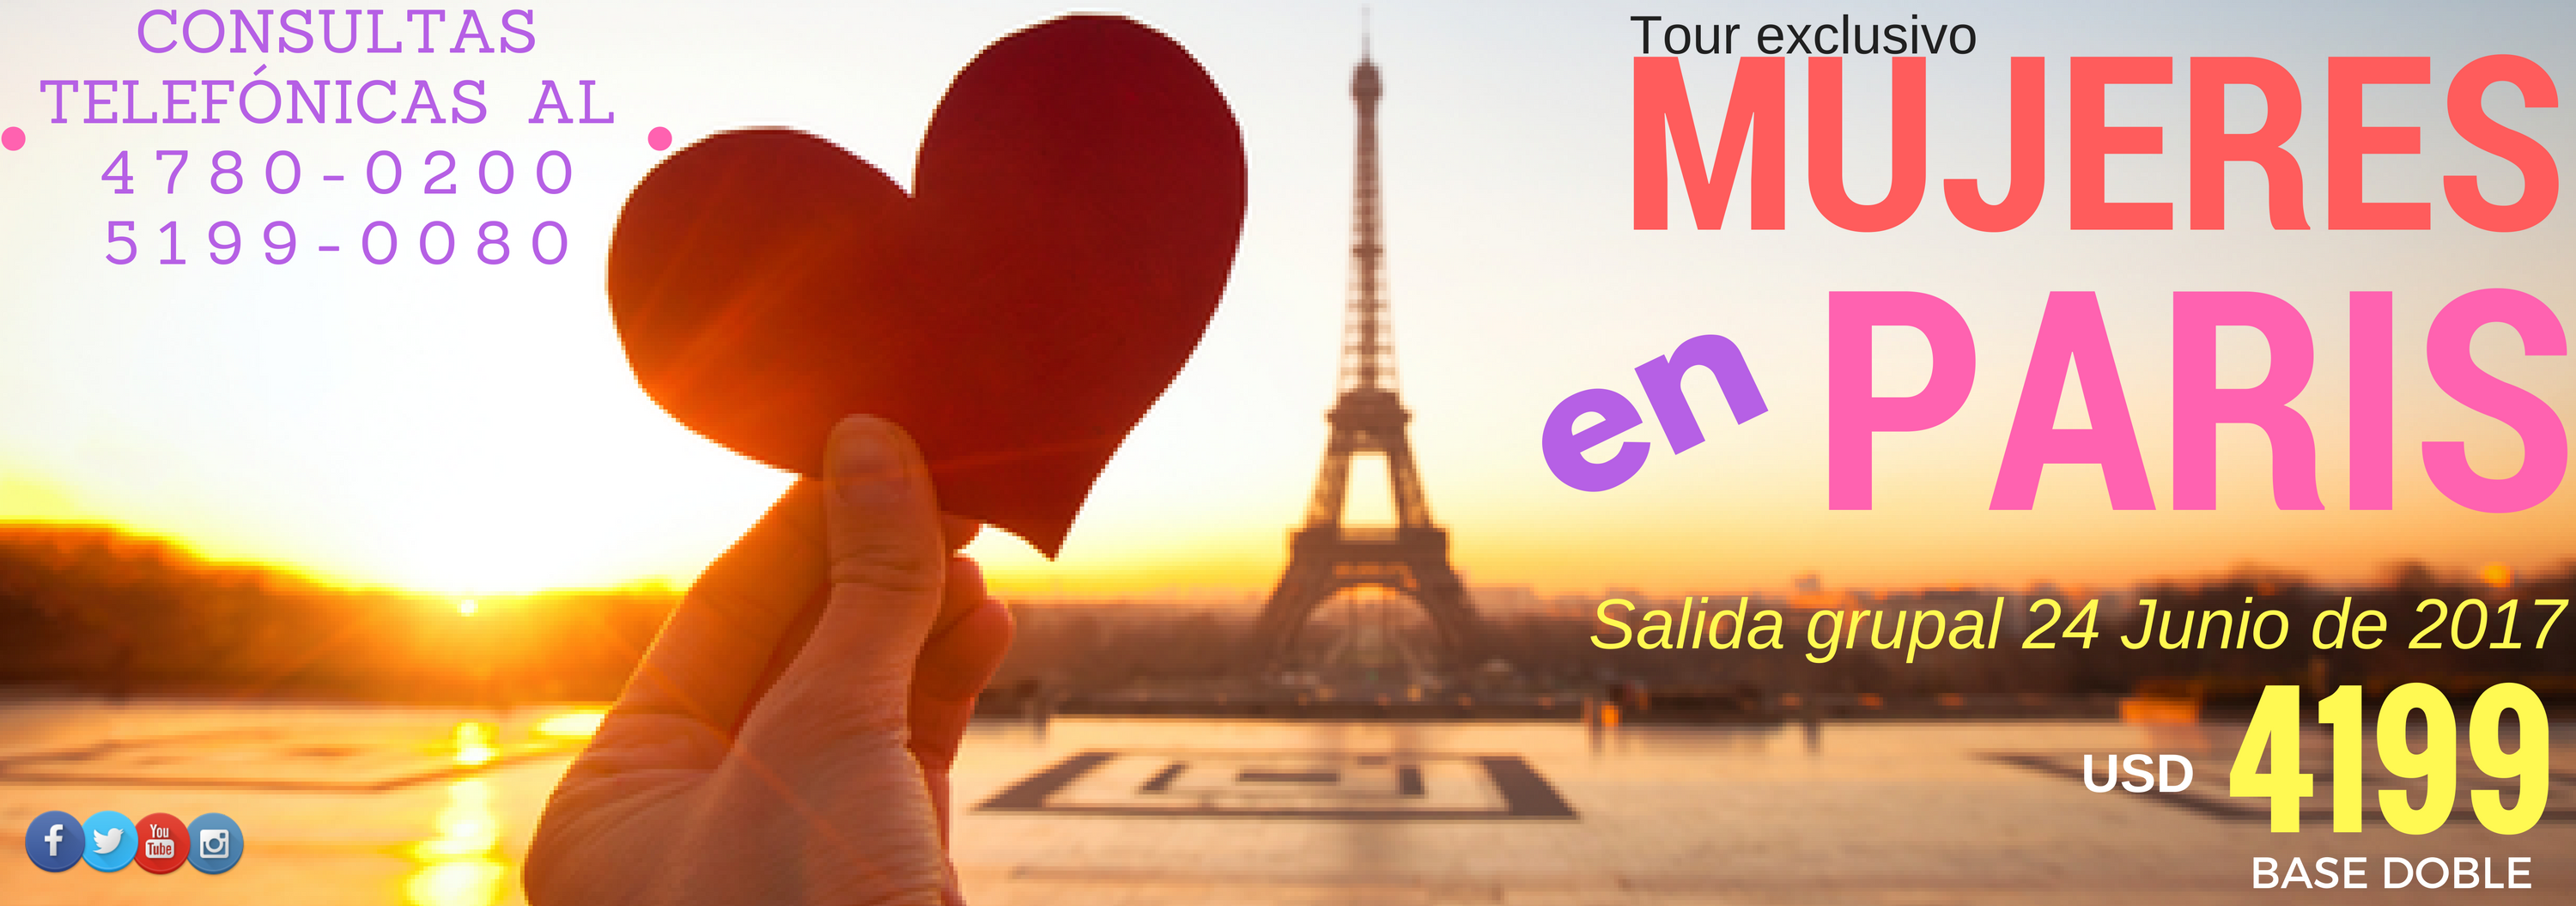 Tour Mujeres en paris